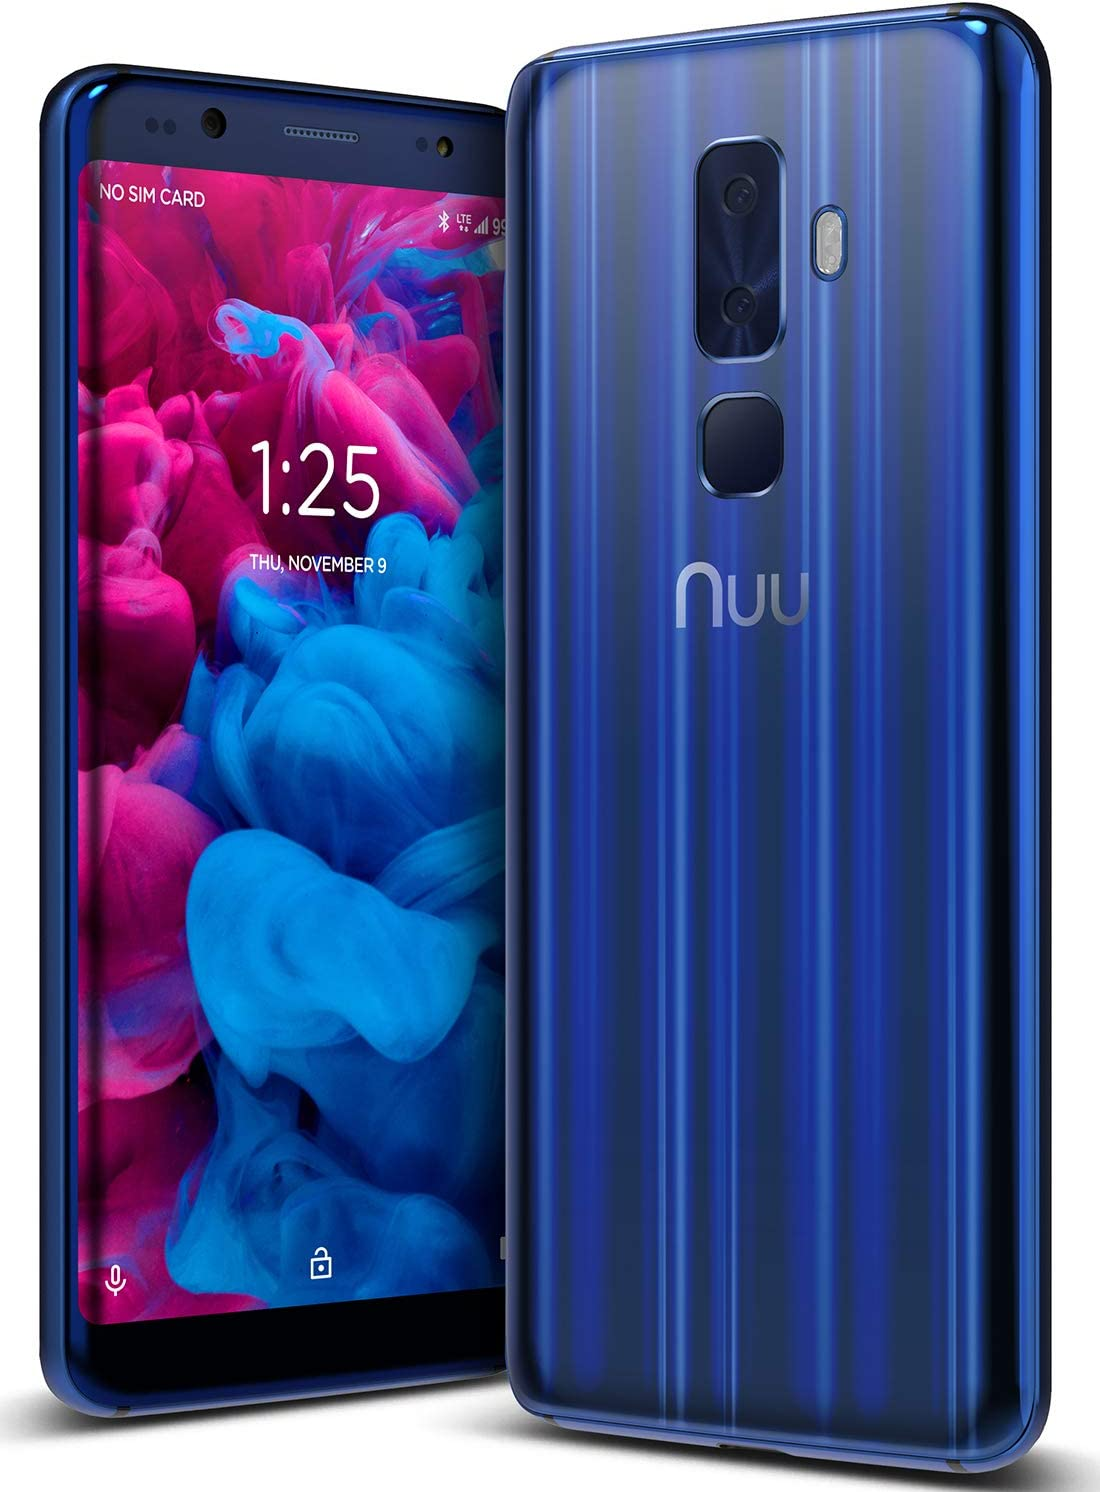 "NUU Mobile G3 Unlocked Cell Phone 64GB + 4GB RAM - 5.7"" Android Smartphone - Sapphire Blue"